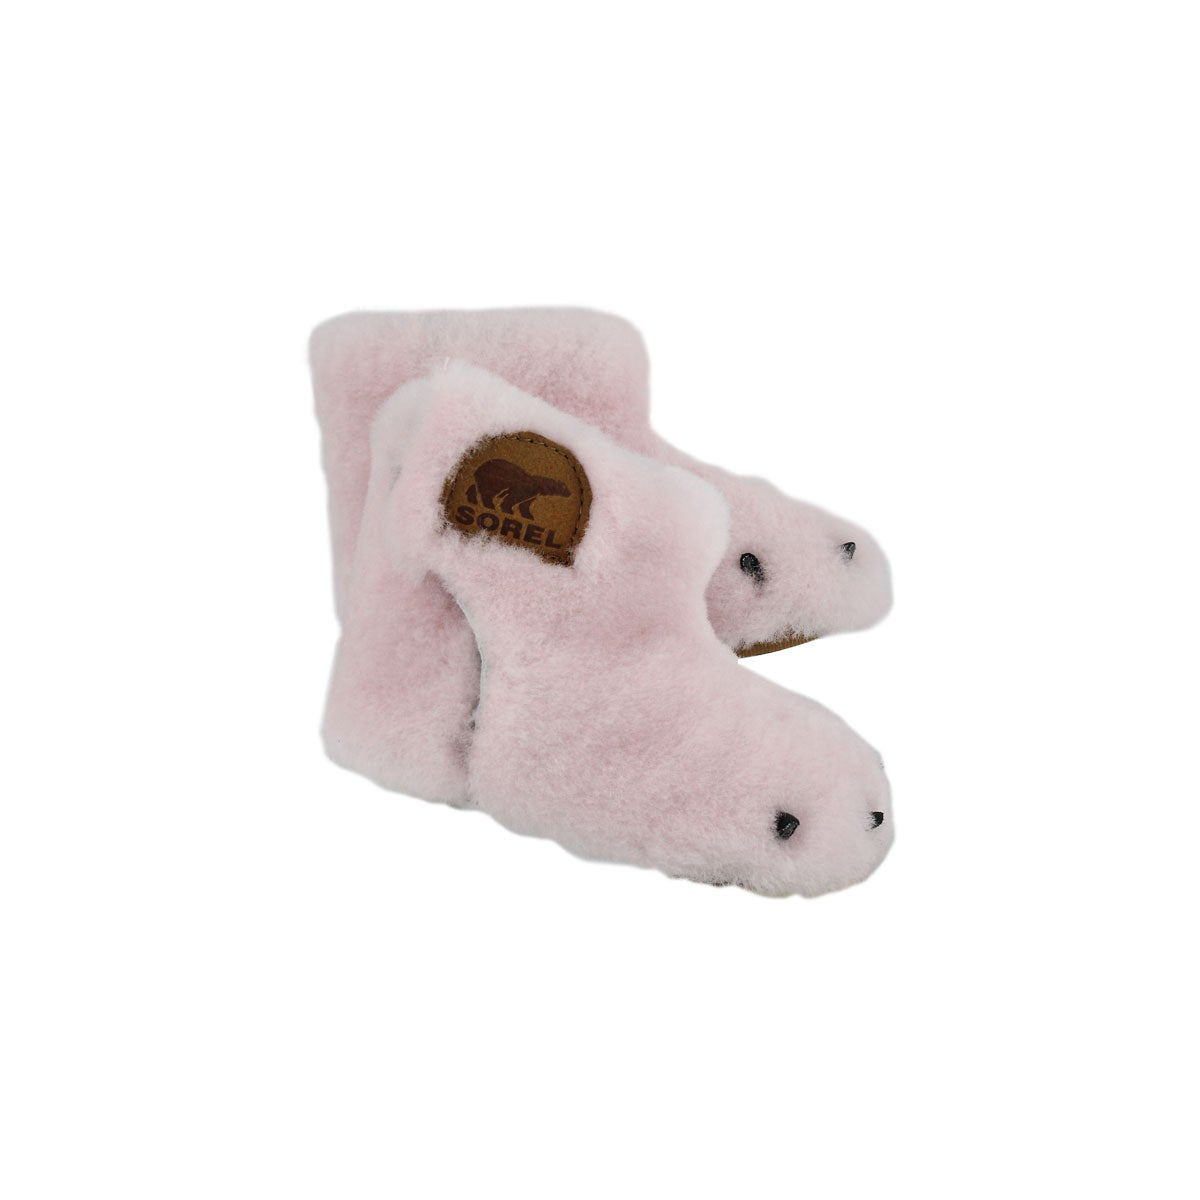 Inf Bear Paw dsty pnk boot slipper